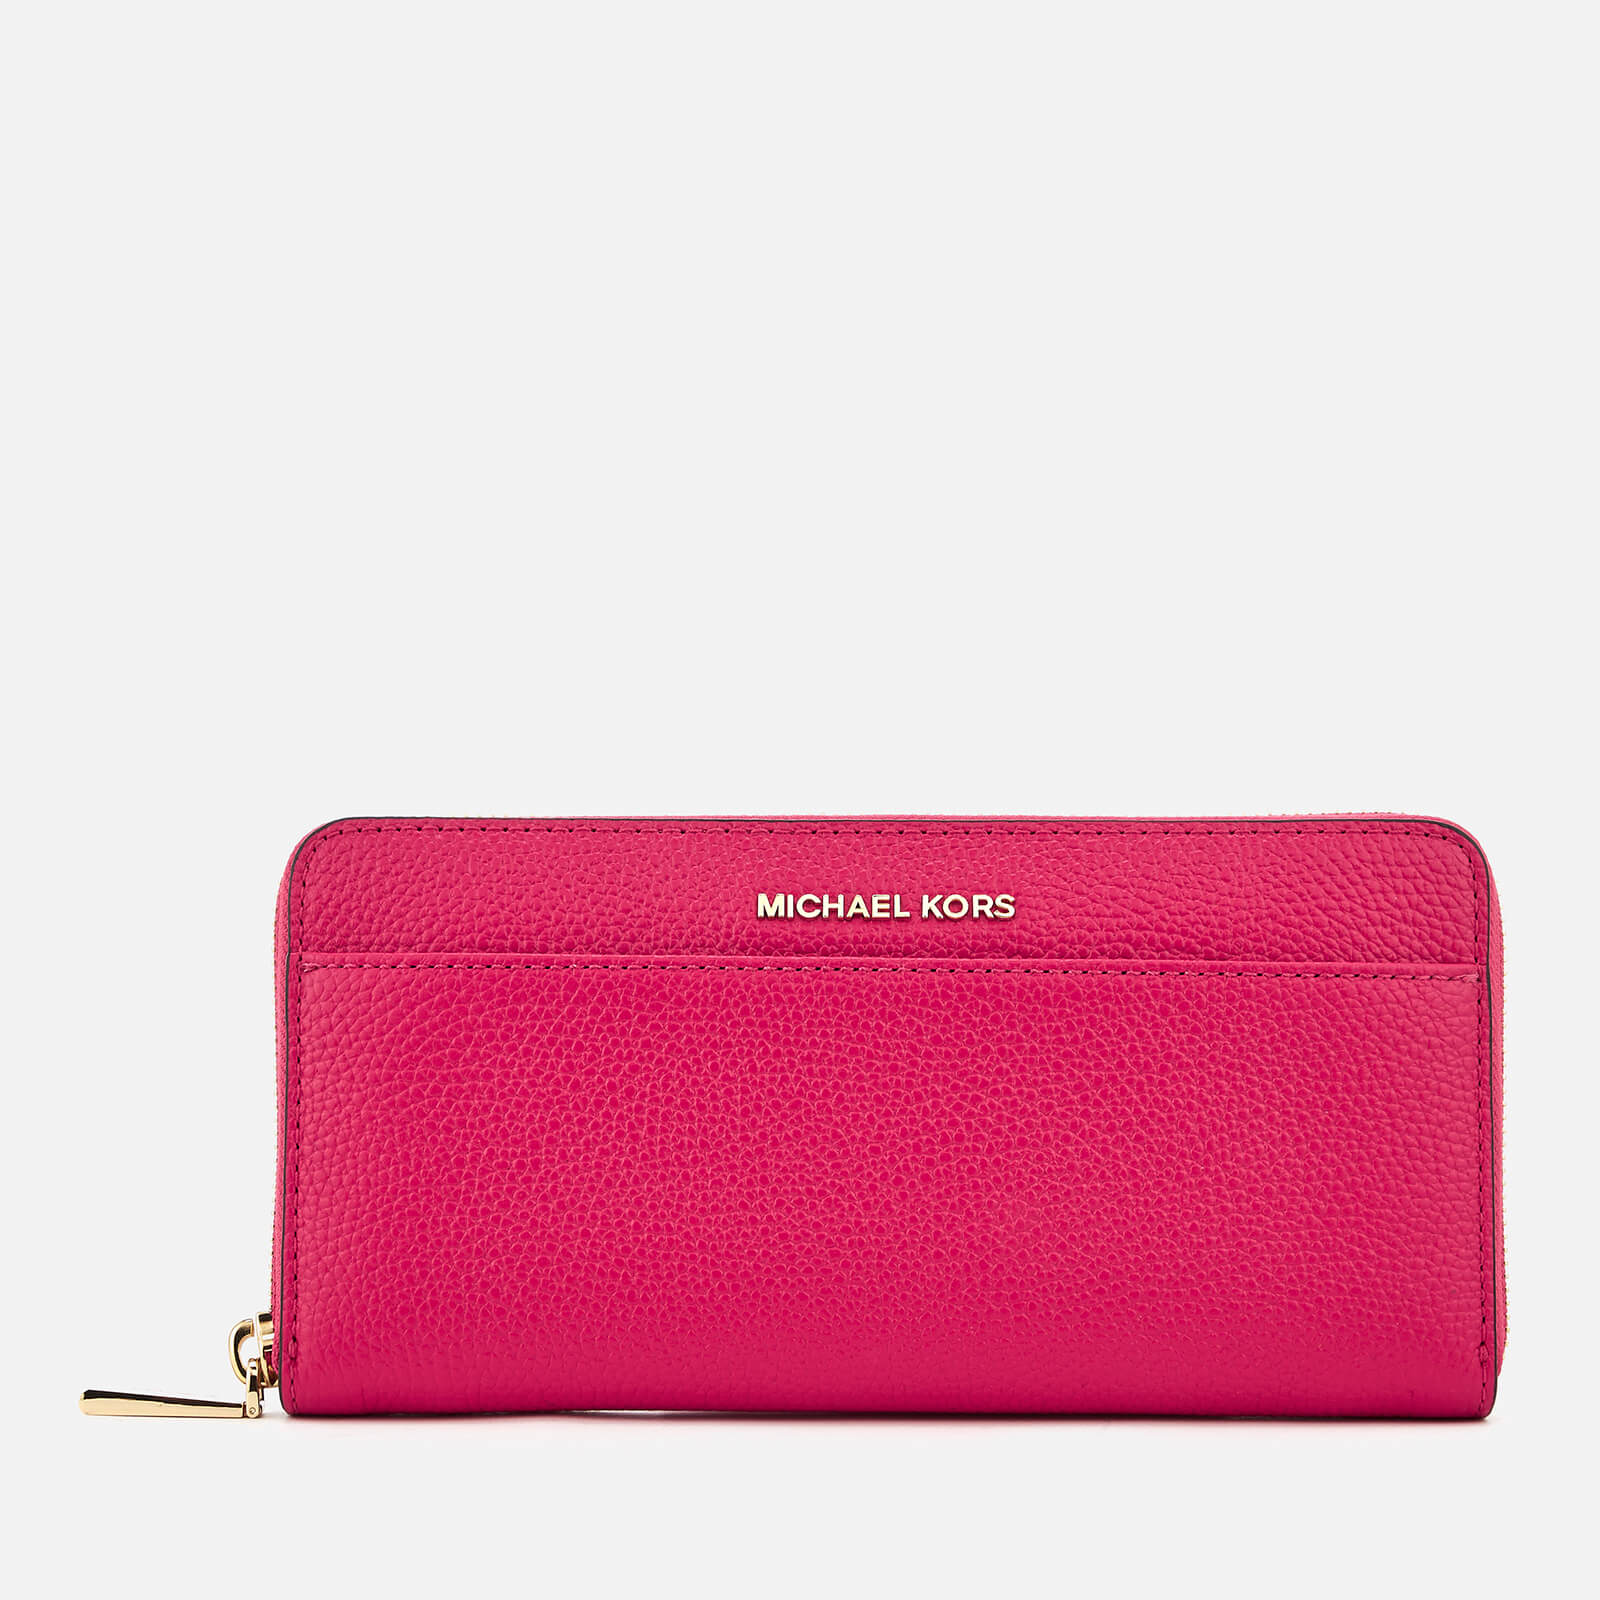 5917a0dcf32d35 MICHAEL MICHAEL KORS Women's Pocket Zip Around Continental Wallet - Ultra  Pink - Free UK Delivery over £50